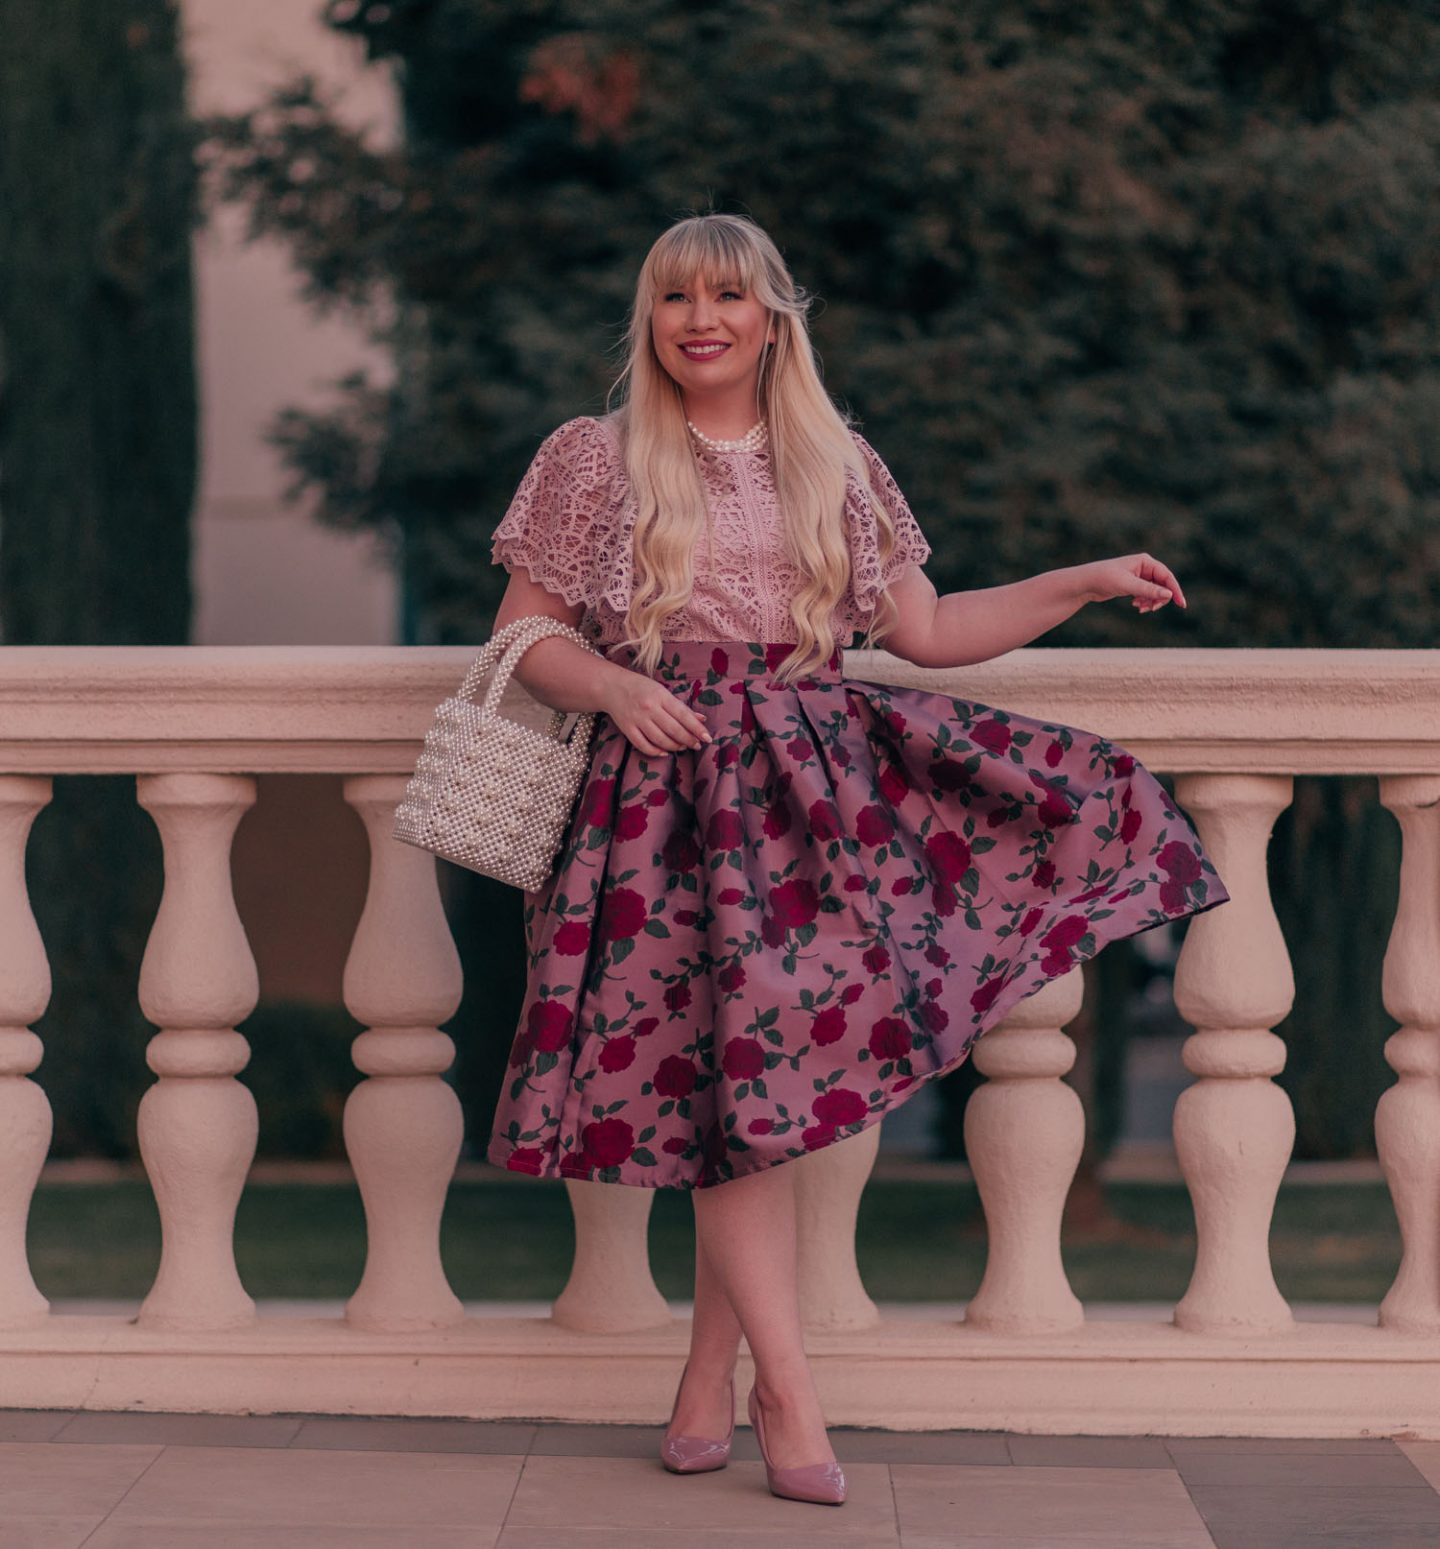 Feminine Fashion Blogger Elizabeth Hugen of Lizzie in Lace shares 5 Easy Ways to Dress More Feminine and wear a pink outfit with a lace top and floral skirt